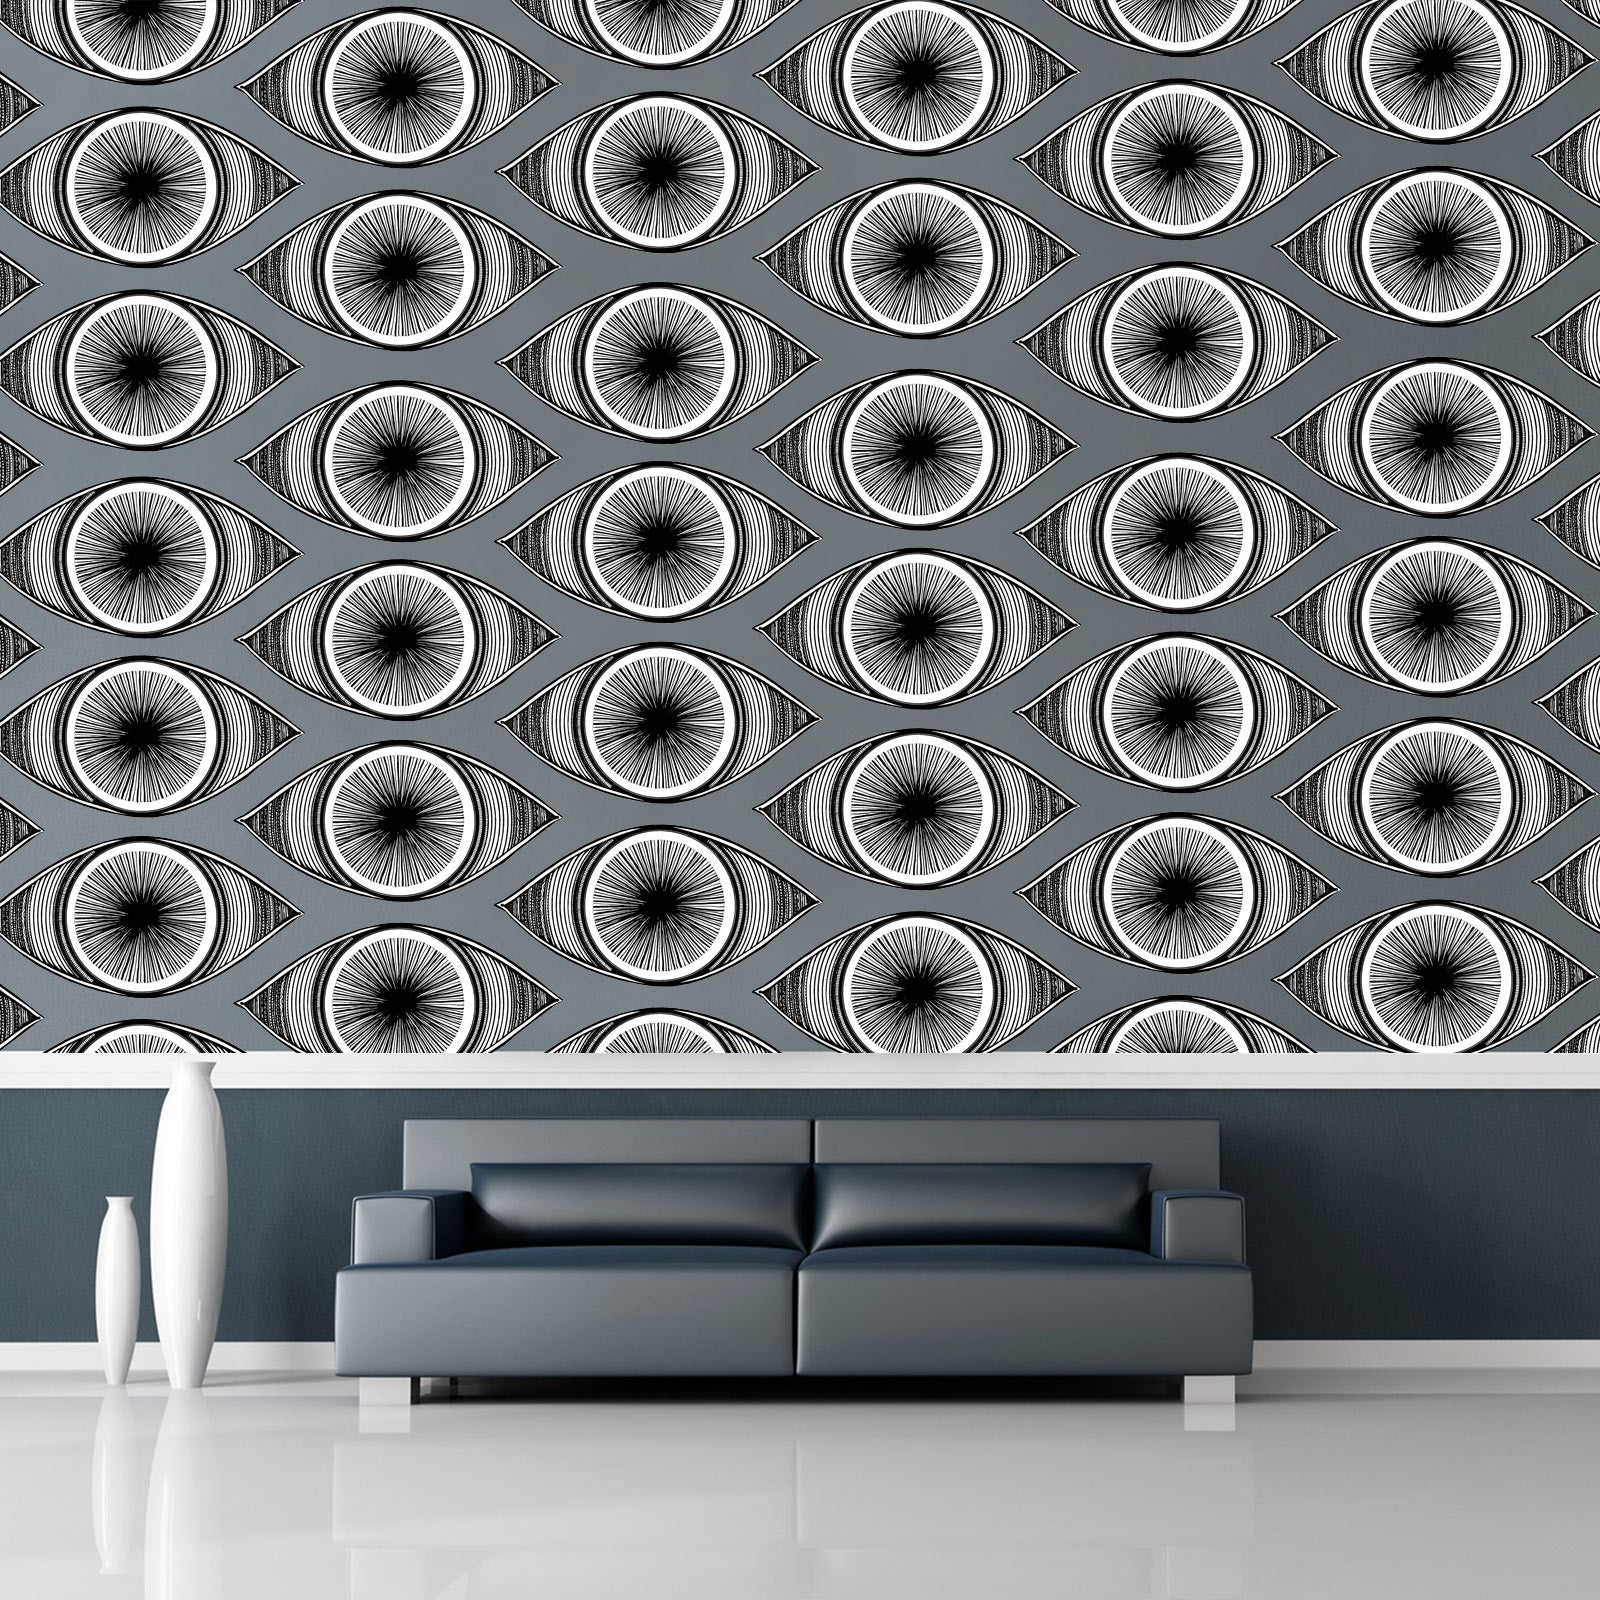 Minds eyes 10 piece fabric wall sticker set conspicuous design eye wall stickers as a mural on living room wall amipublicfo Images